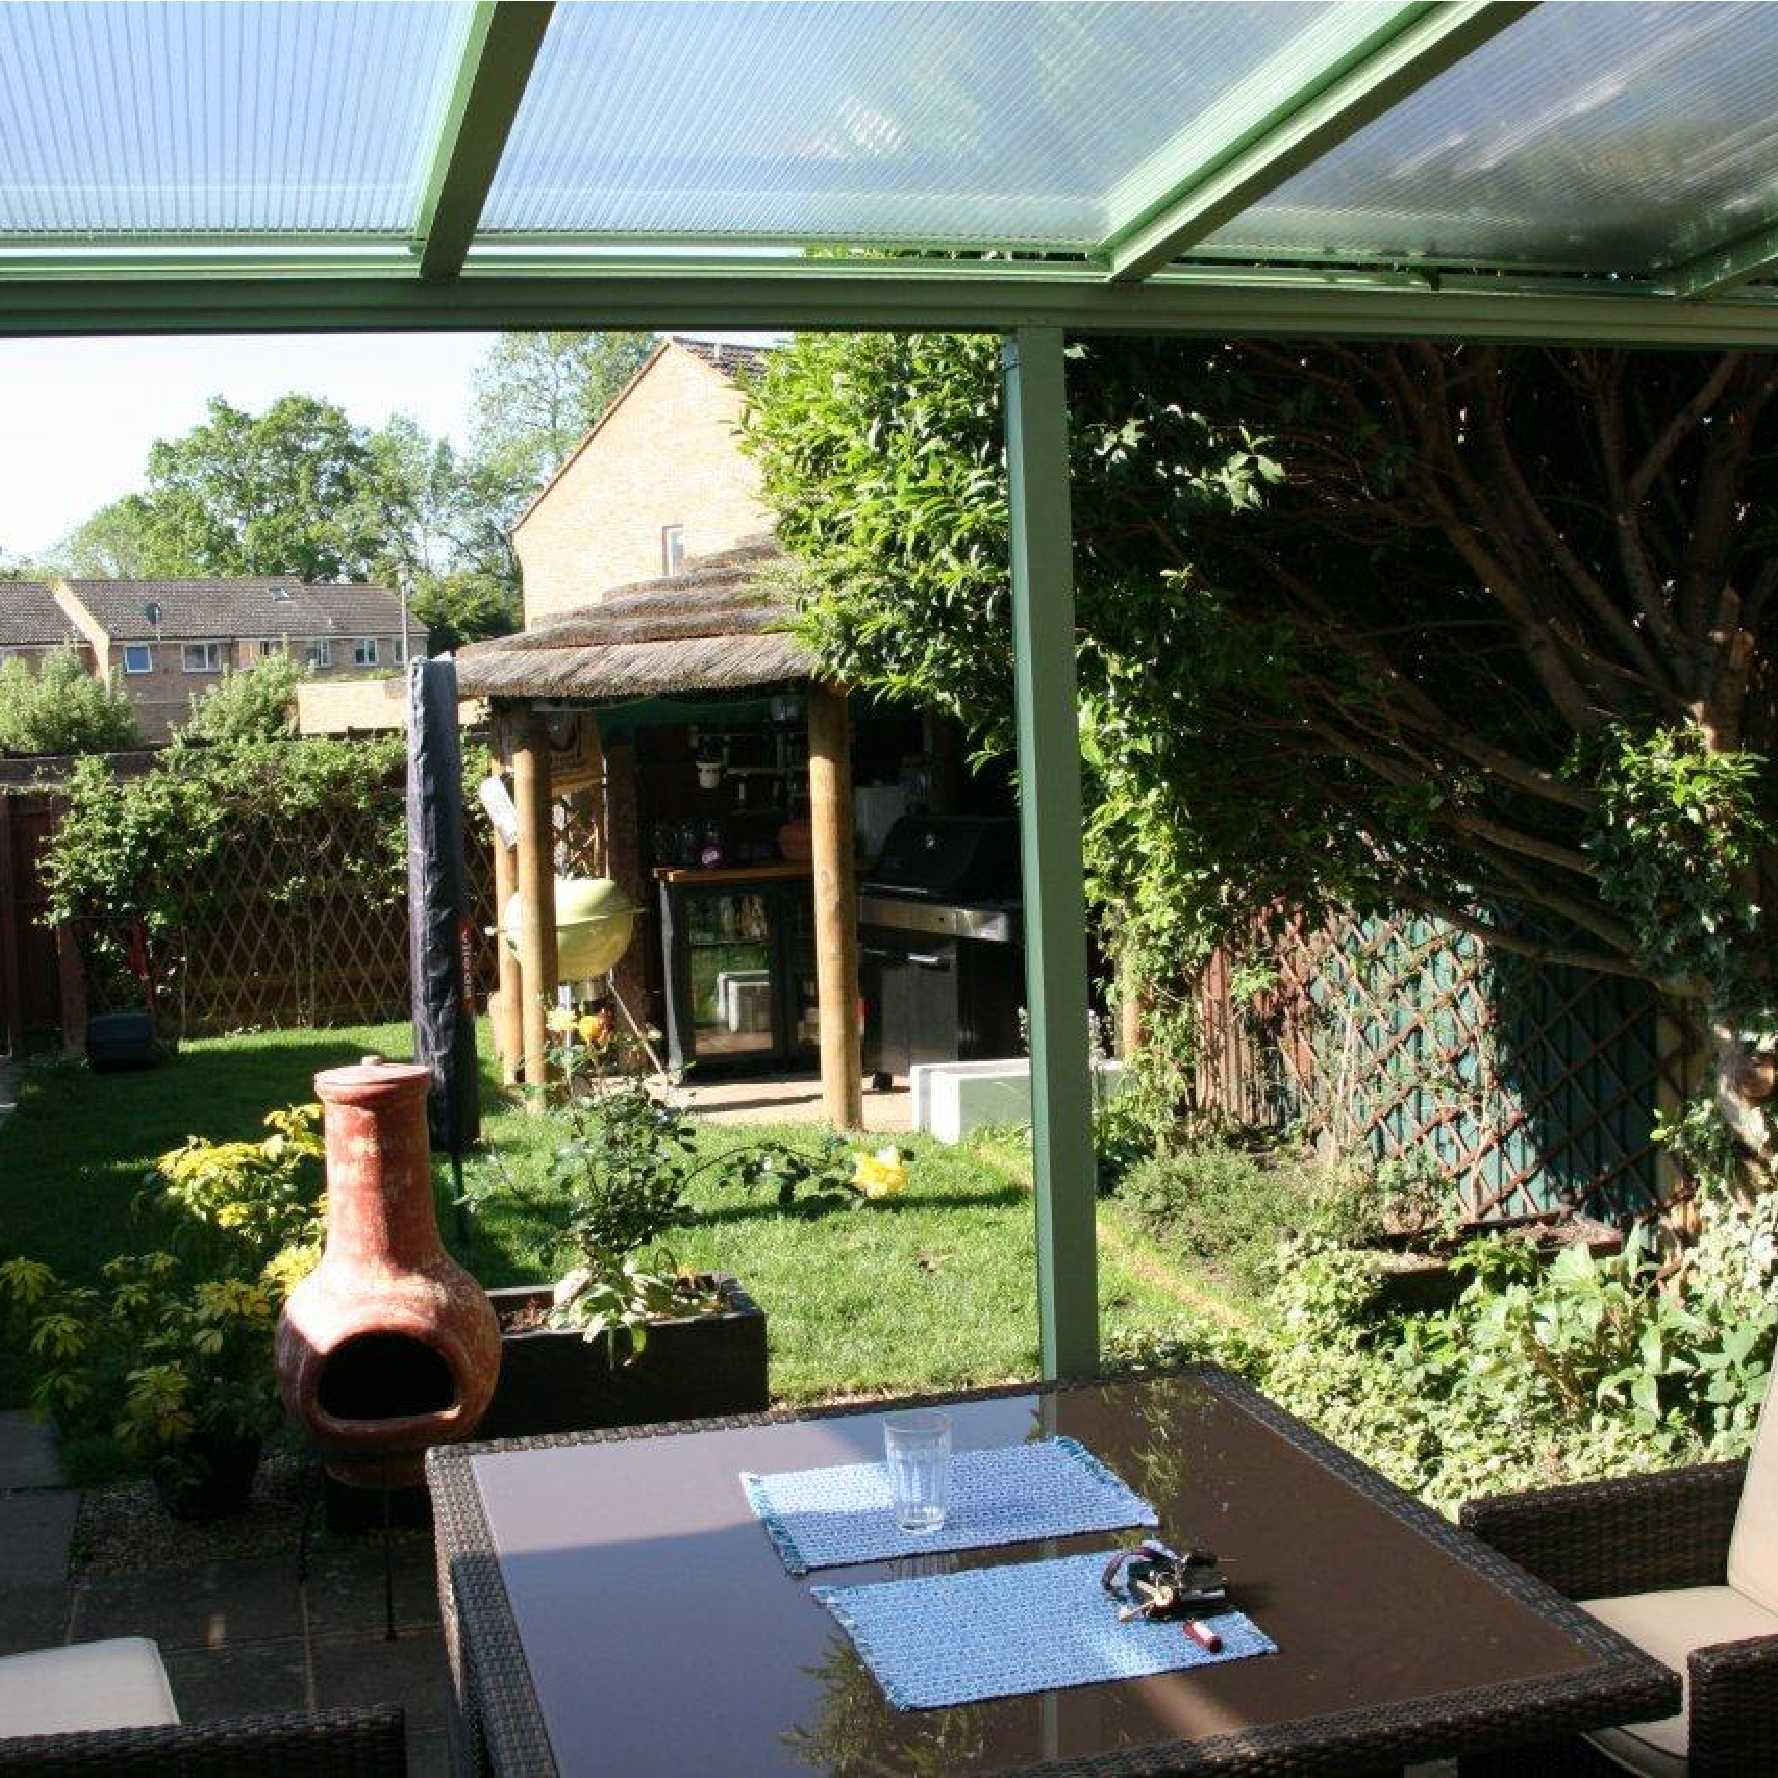 Affordable Omega Smart White Lean-To Canopy with 16mm Polycarbonate Glazing - 6.3m (W) x 4.0m (P), (4) Supporting Posts